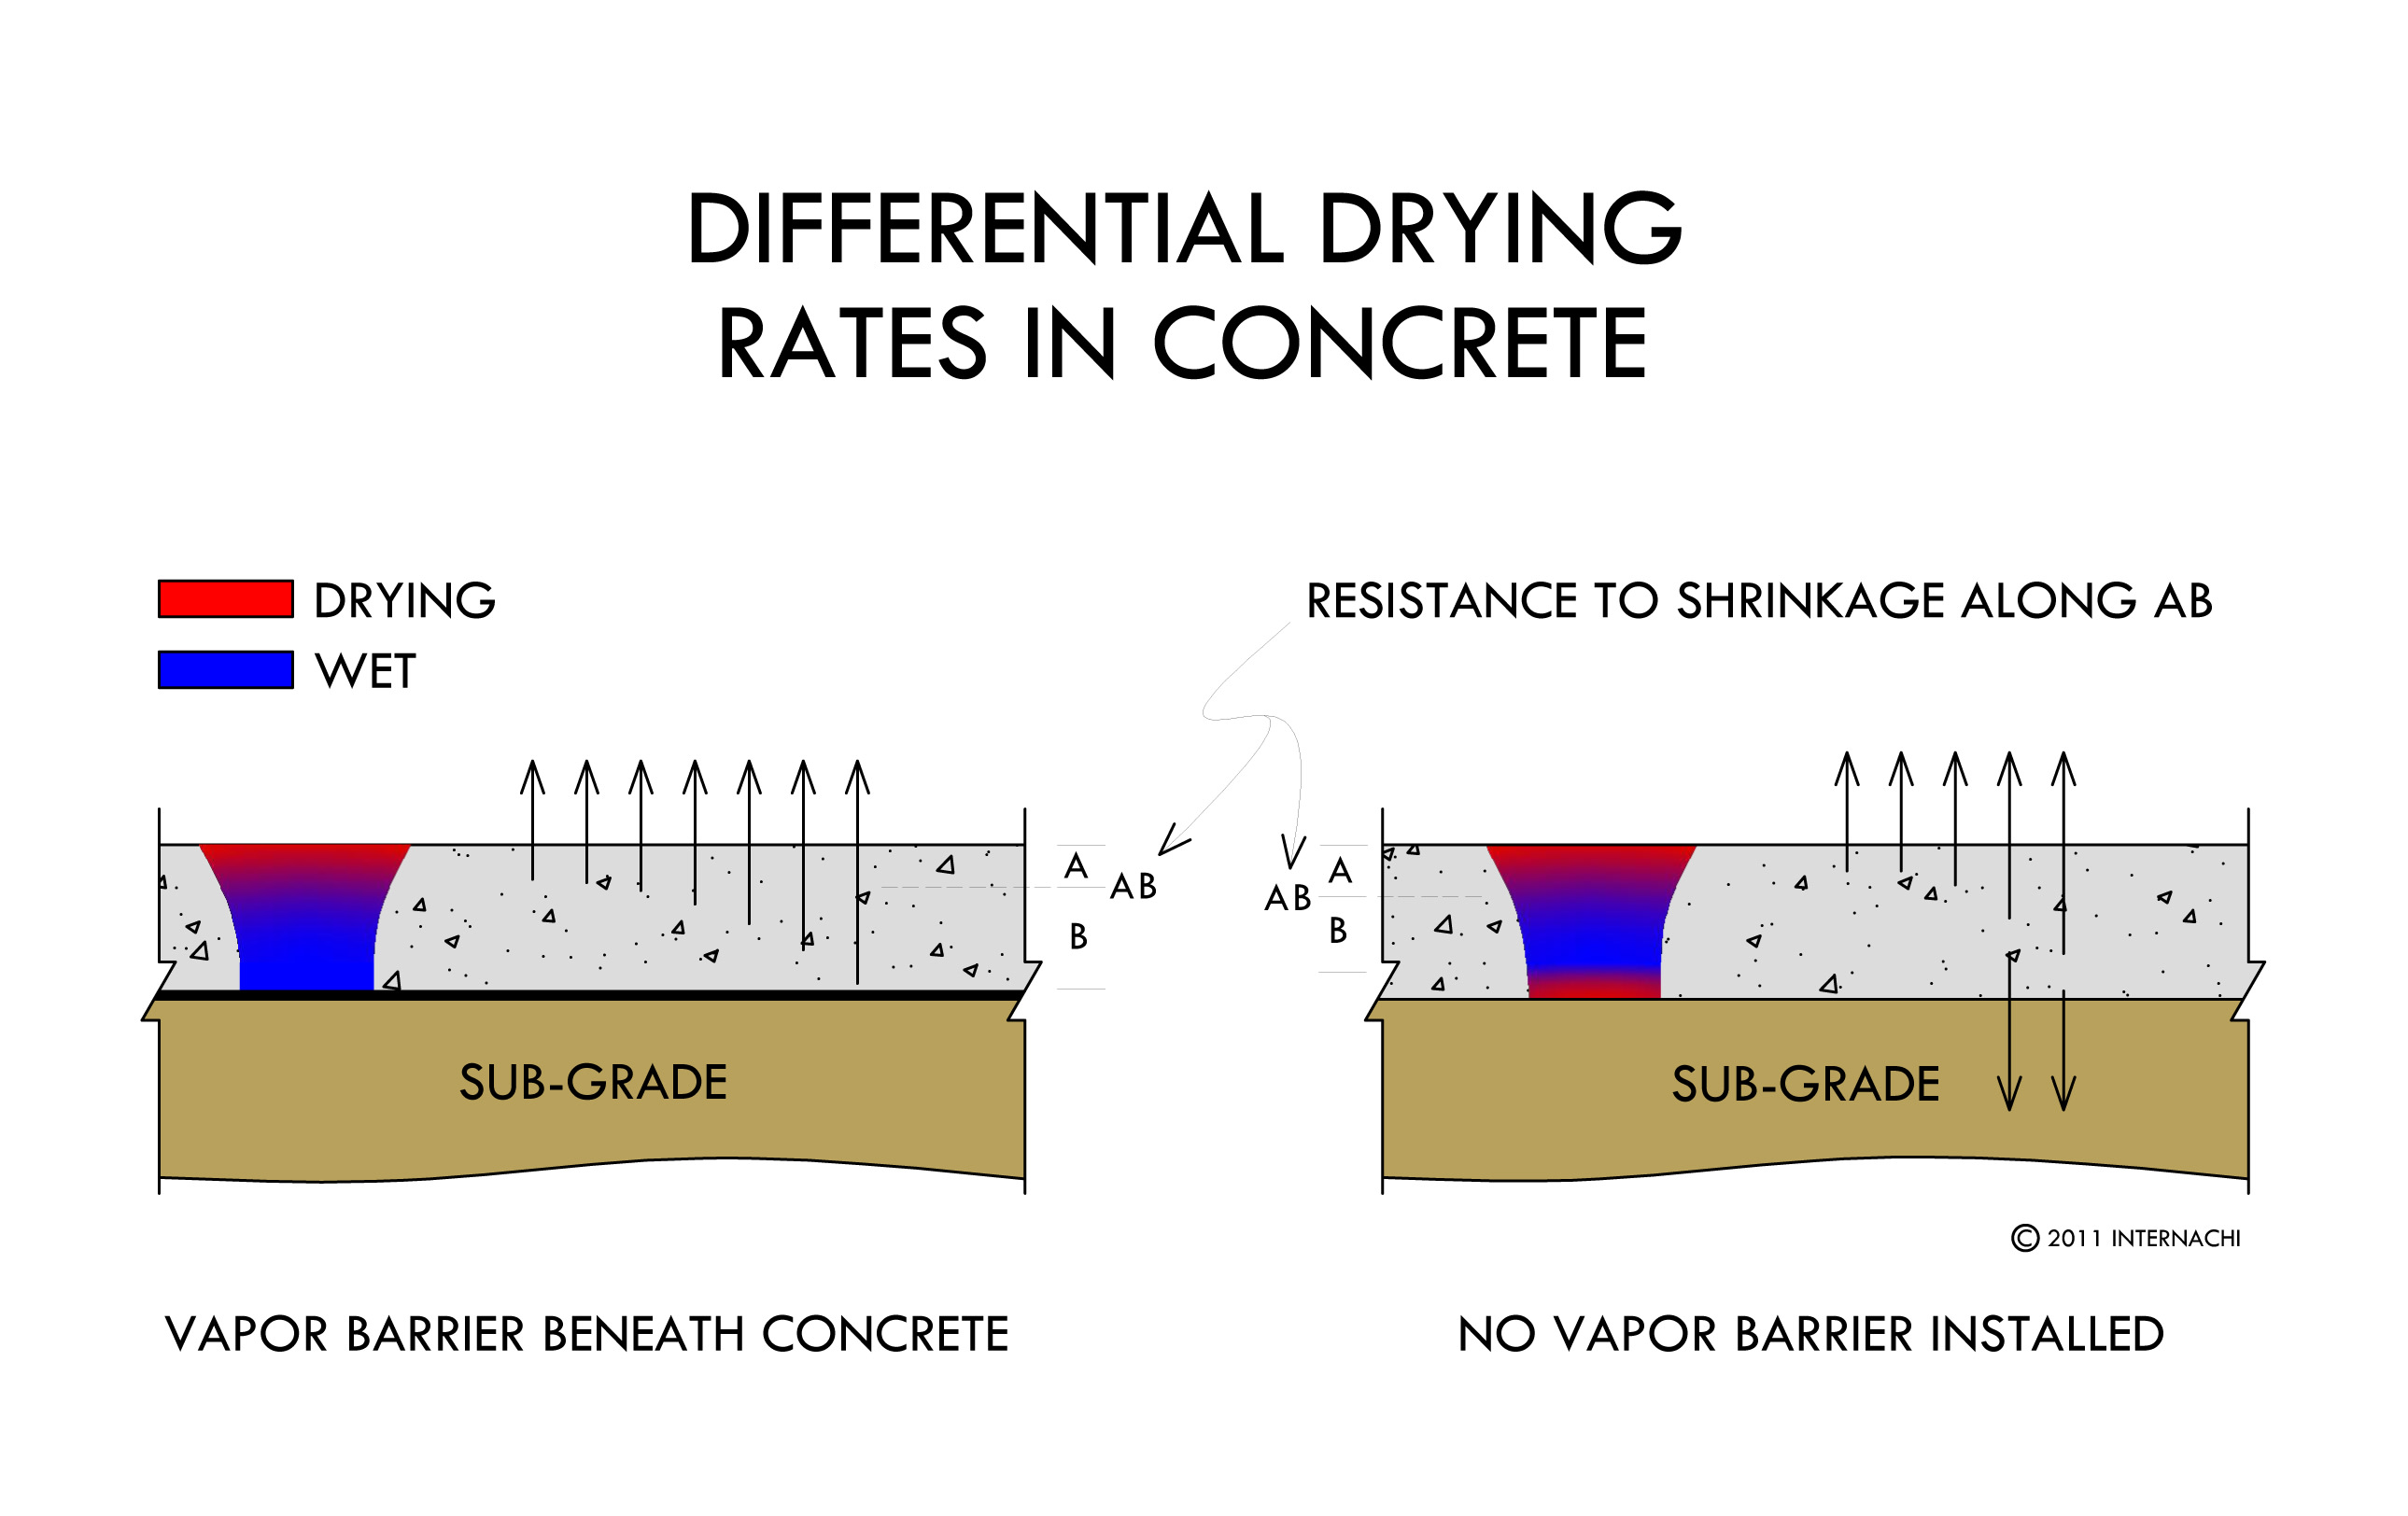 Differential drying rates in concrete.